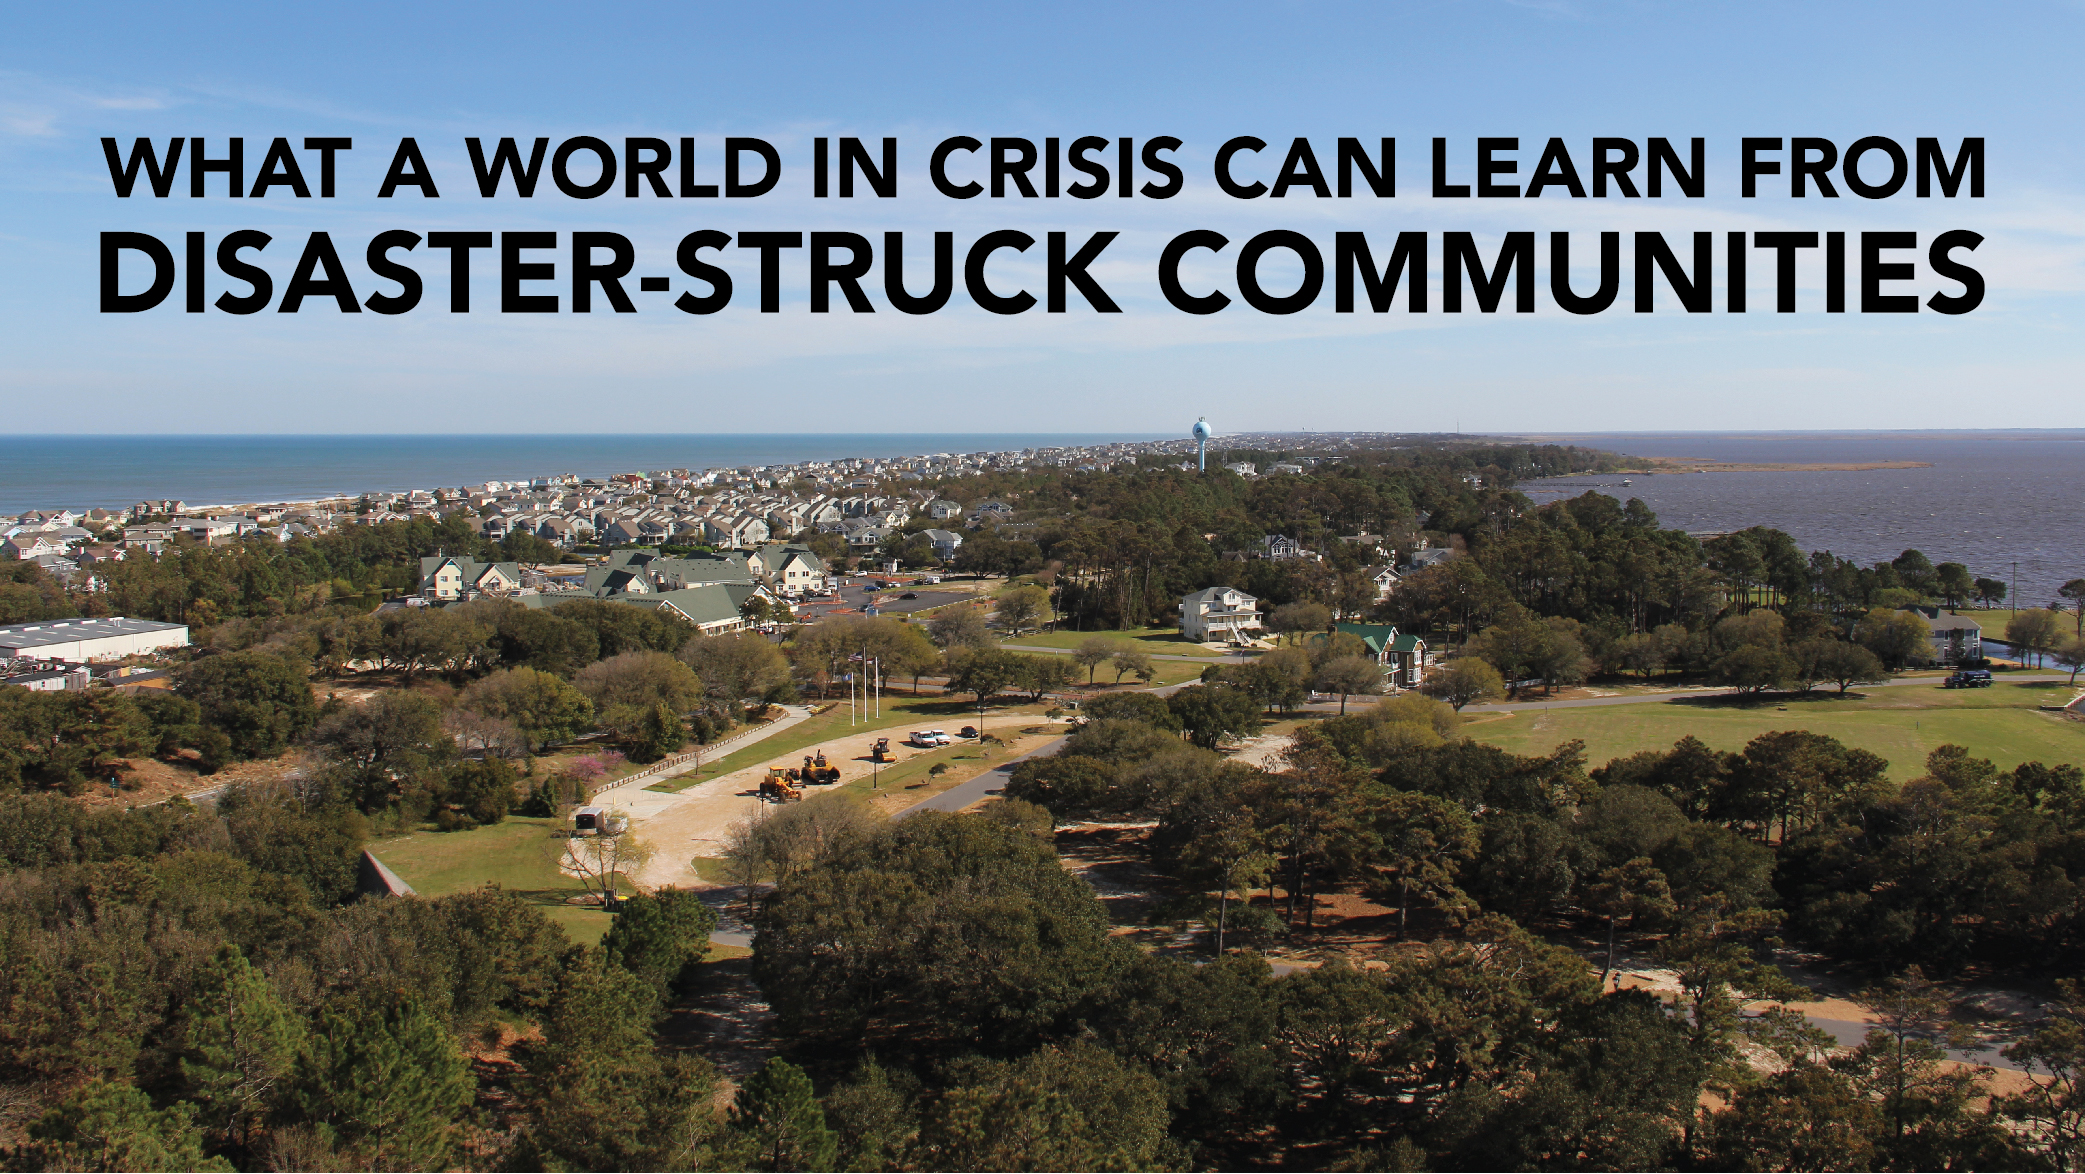 What a World in Crisis Can Learn from Disaster-Struck Communities